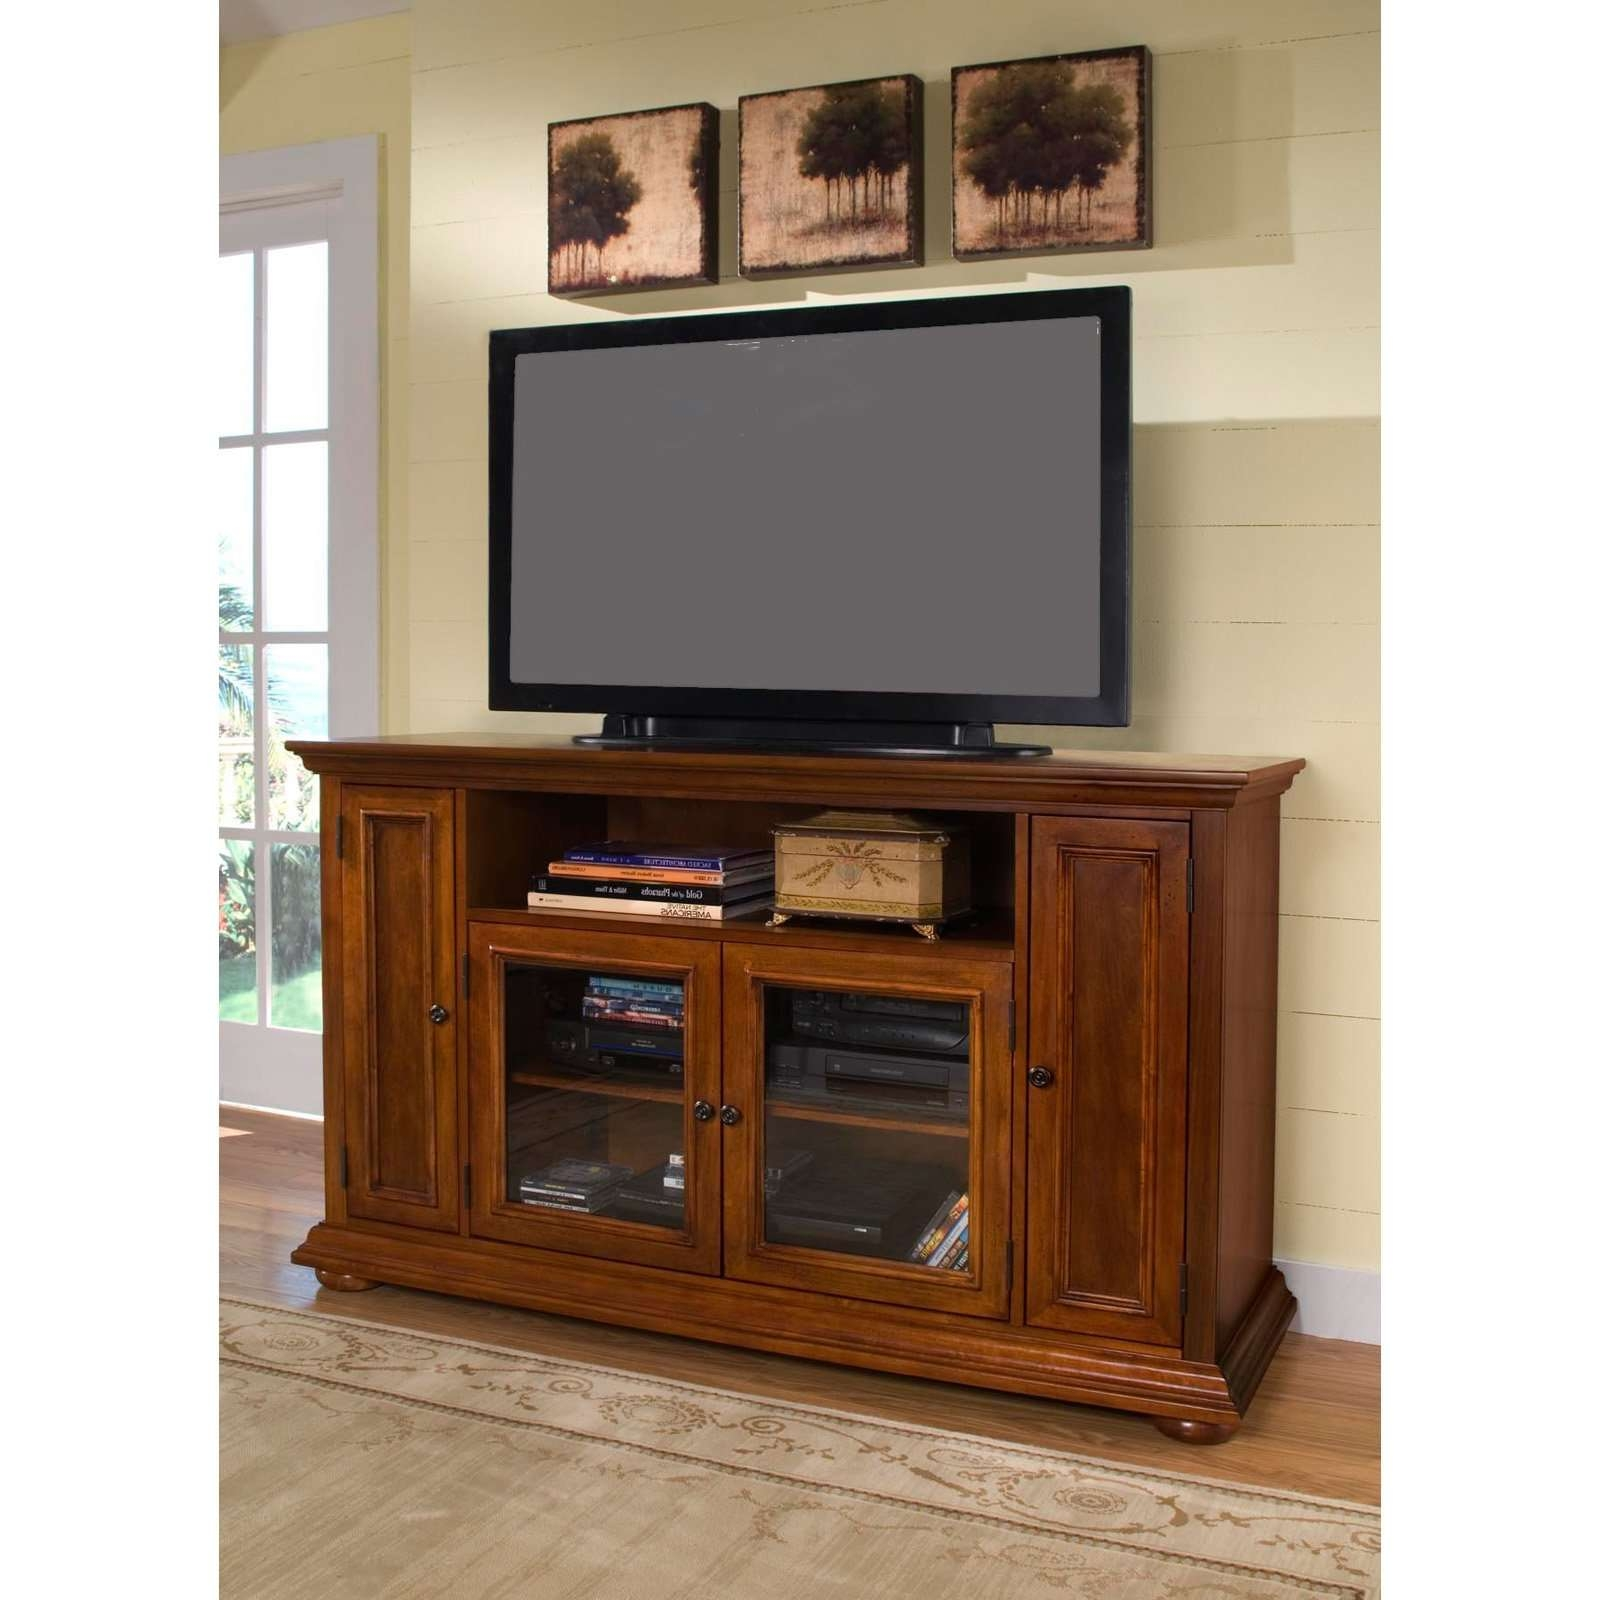 Rectangle Black Flat Screen Tv Over Brown Wooden Cabinet With Pertaining To Wooden Tv Cabinets With Glass Doors (View 4 of 20)